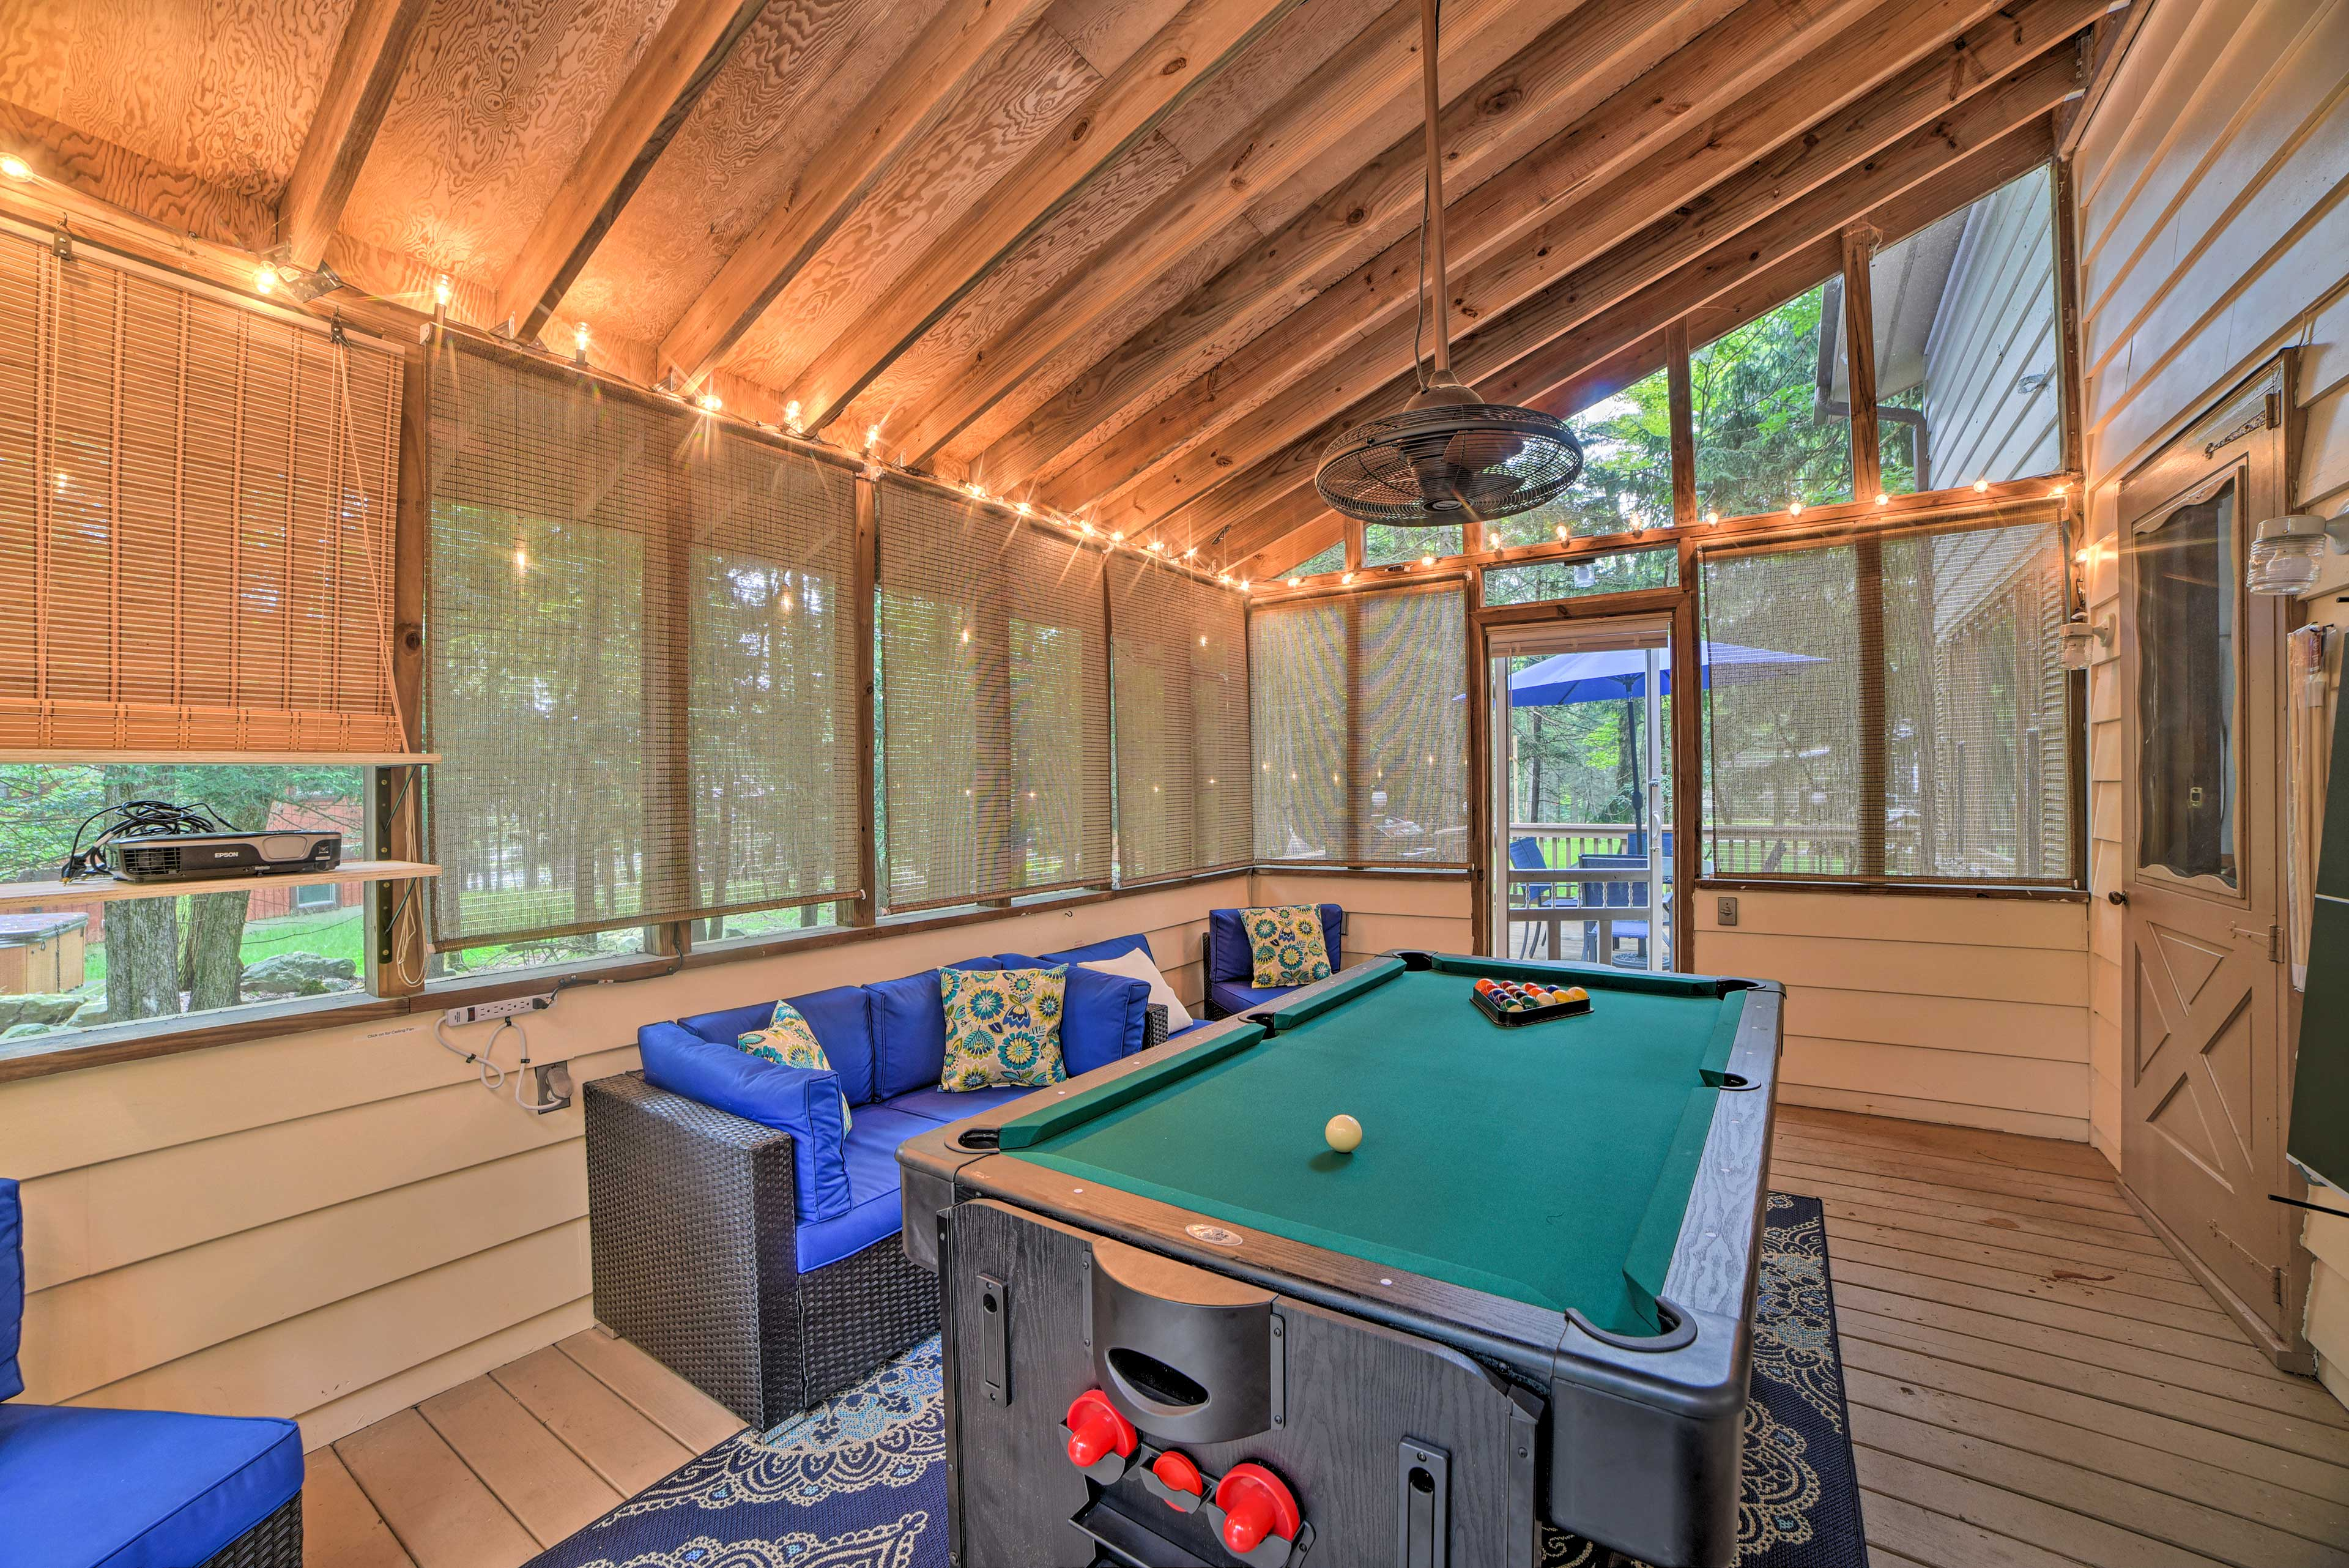 Grab a pool stick for a game of billiards.